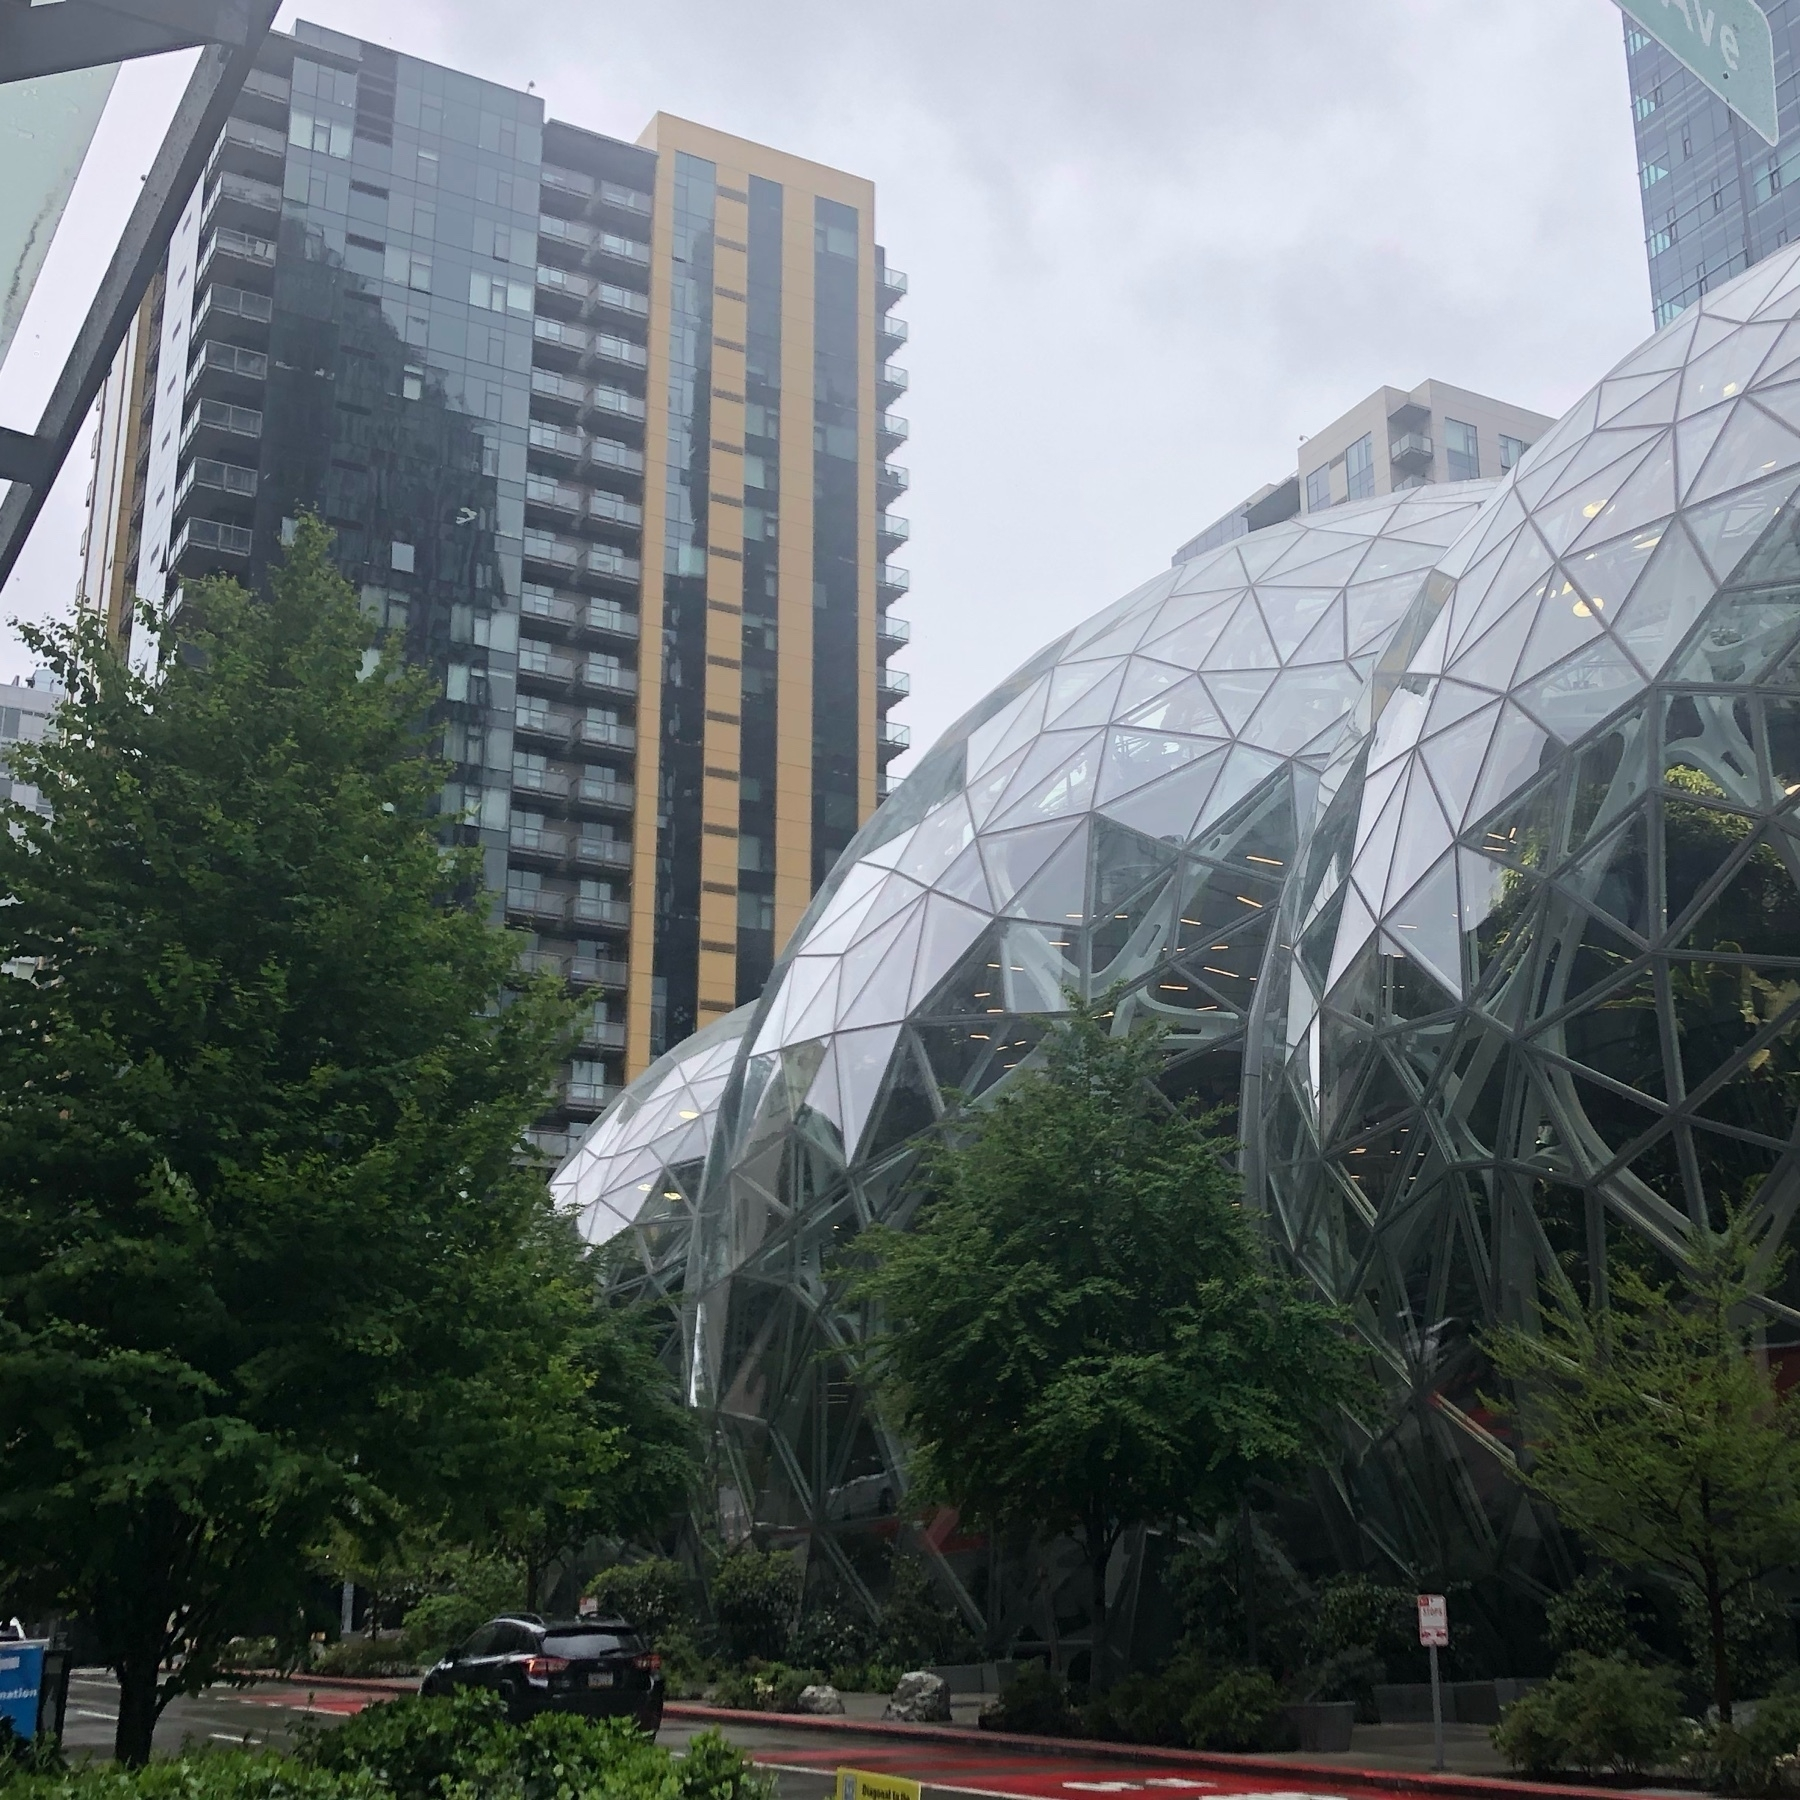 Green trees next to the Amazon HQ on a hazy wet day.